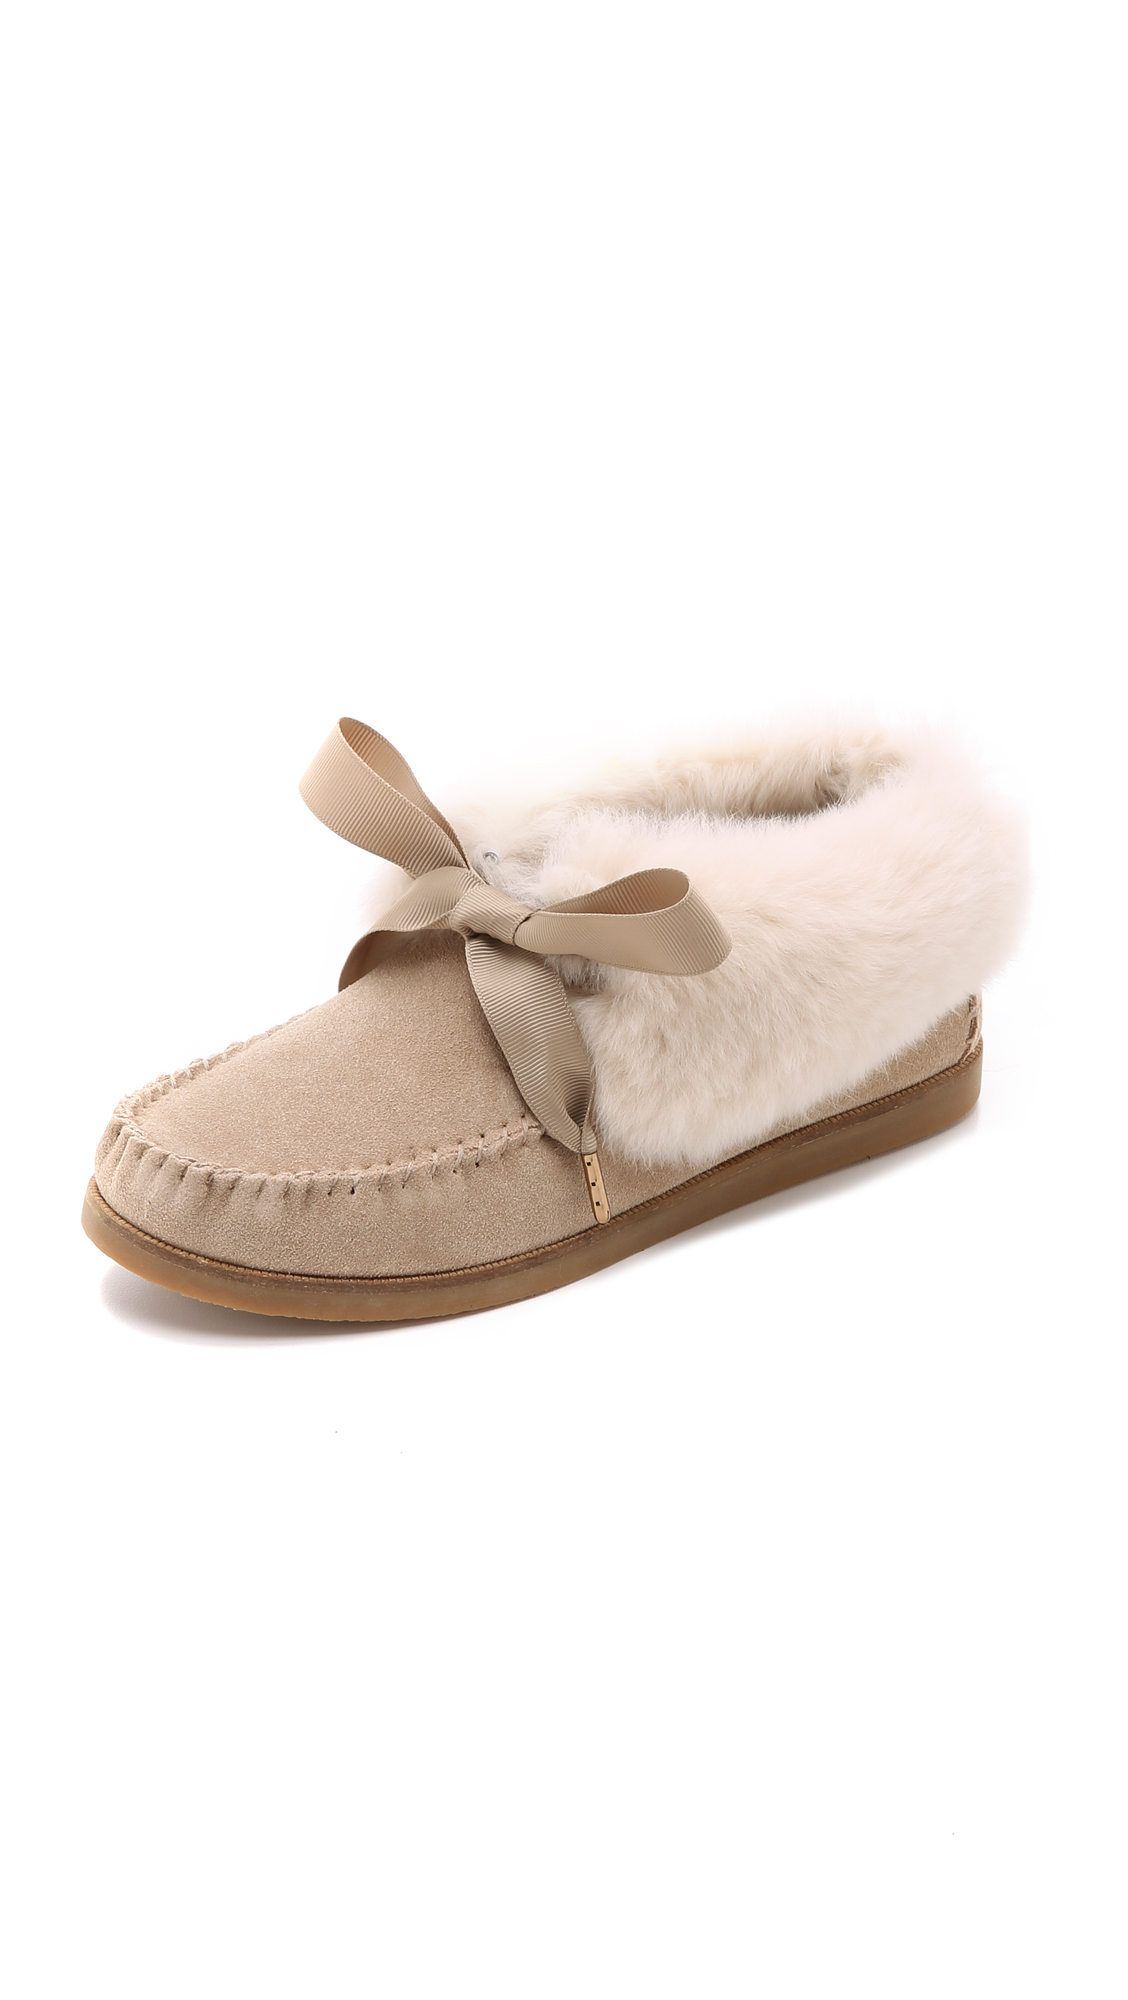 free shipping best store to get best wholesale for sale Tory Burch Aberdeen Fur-Trimmed Moccasins outlet footlocker clearance 2015 new QqswAcej0